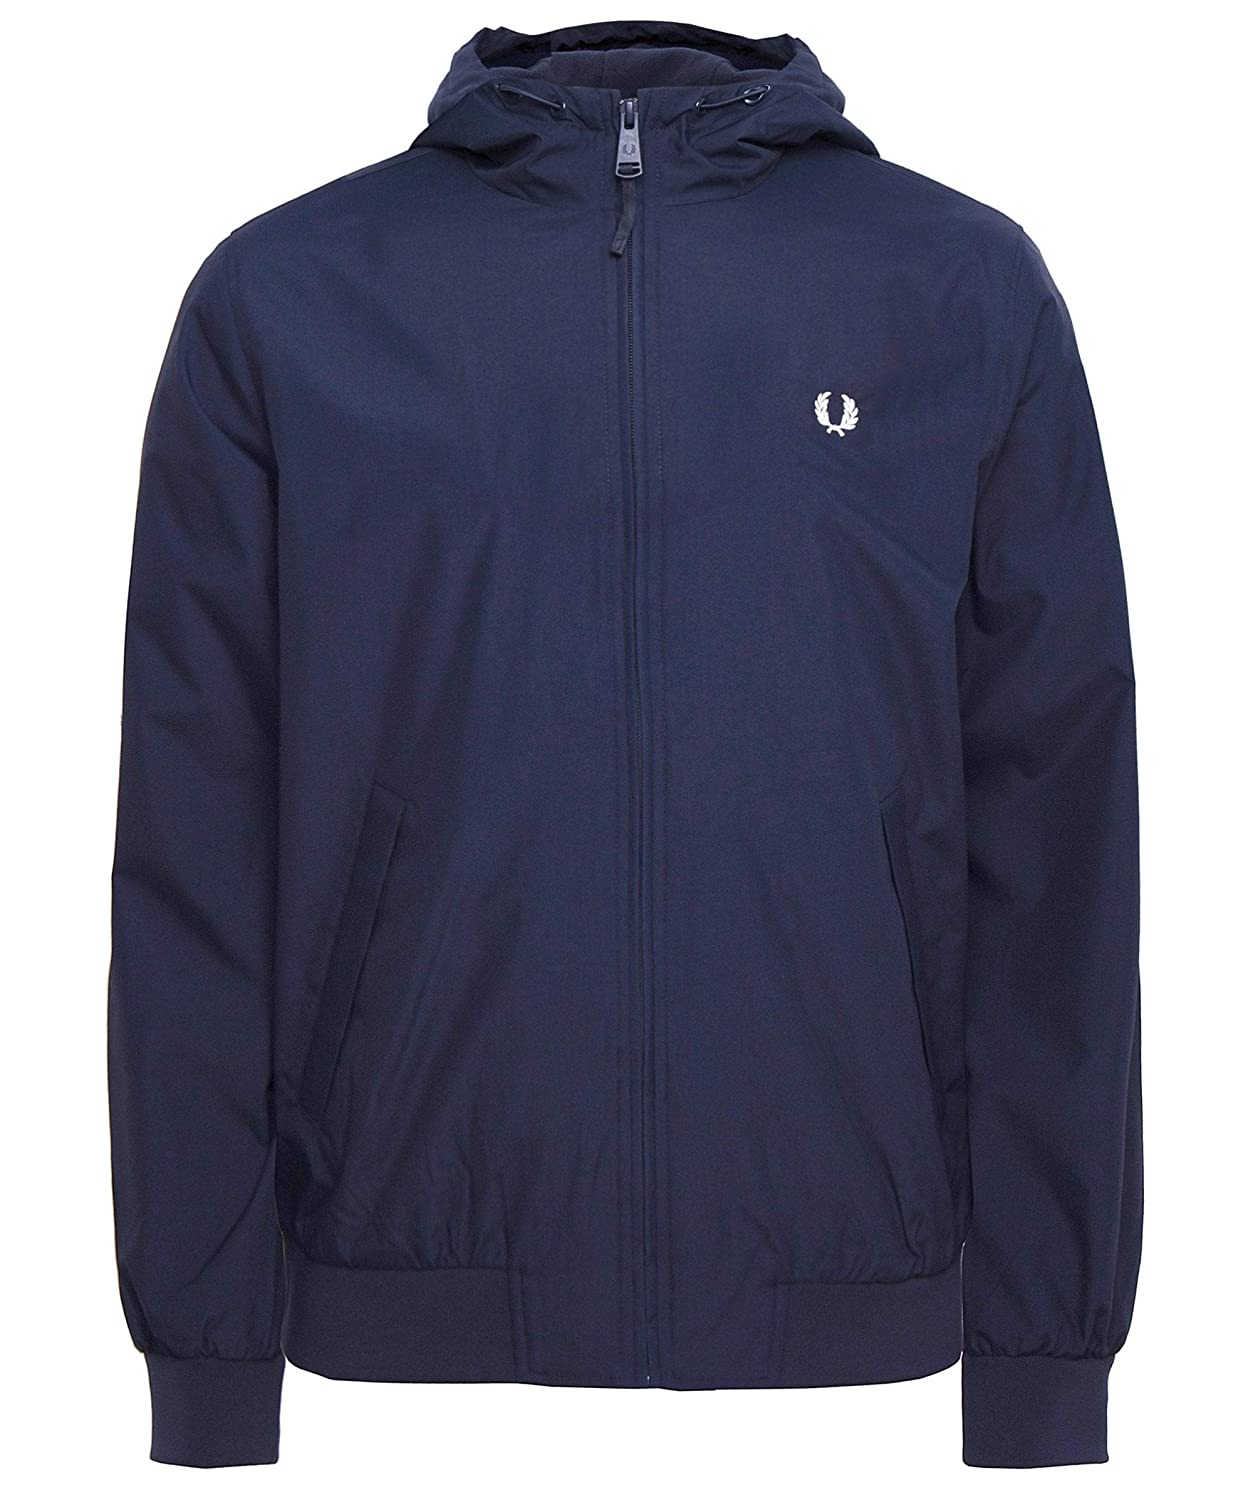 Fred Perry Men's Hooded Brentham Jacket Dark Airforce Blue (738)